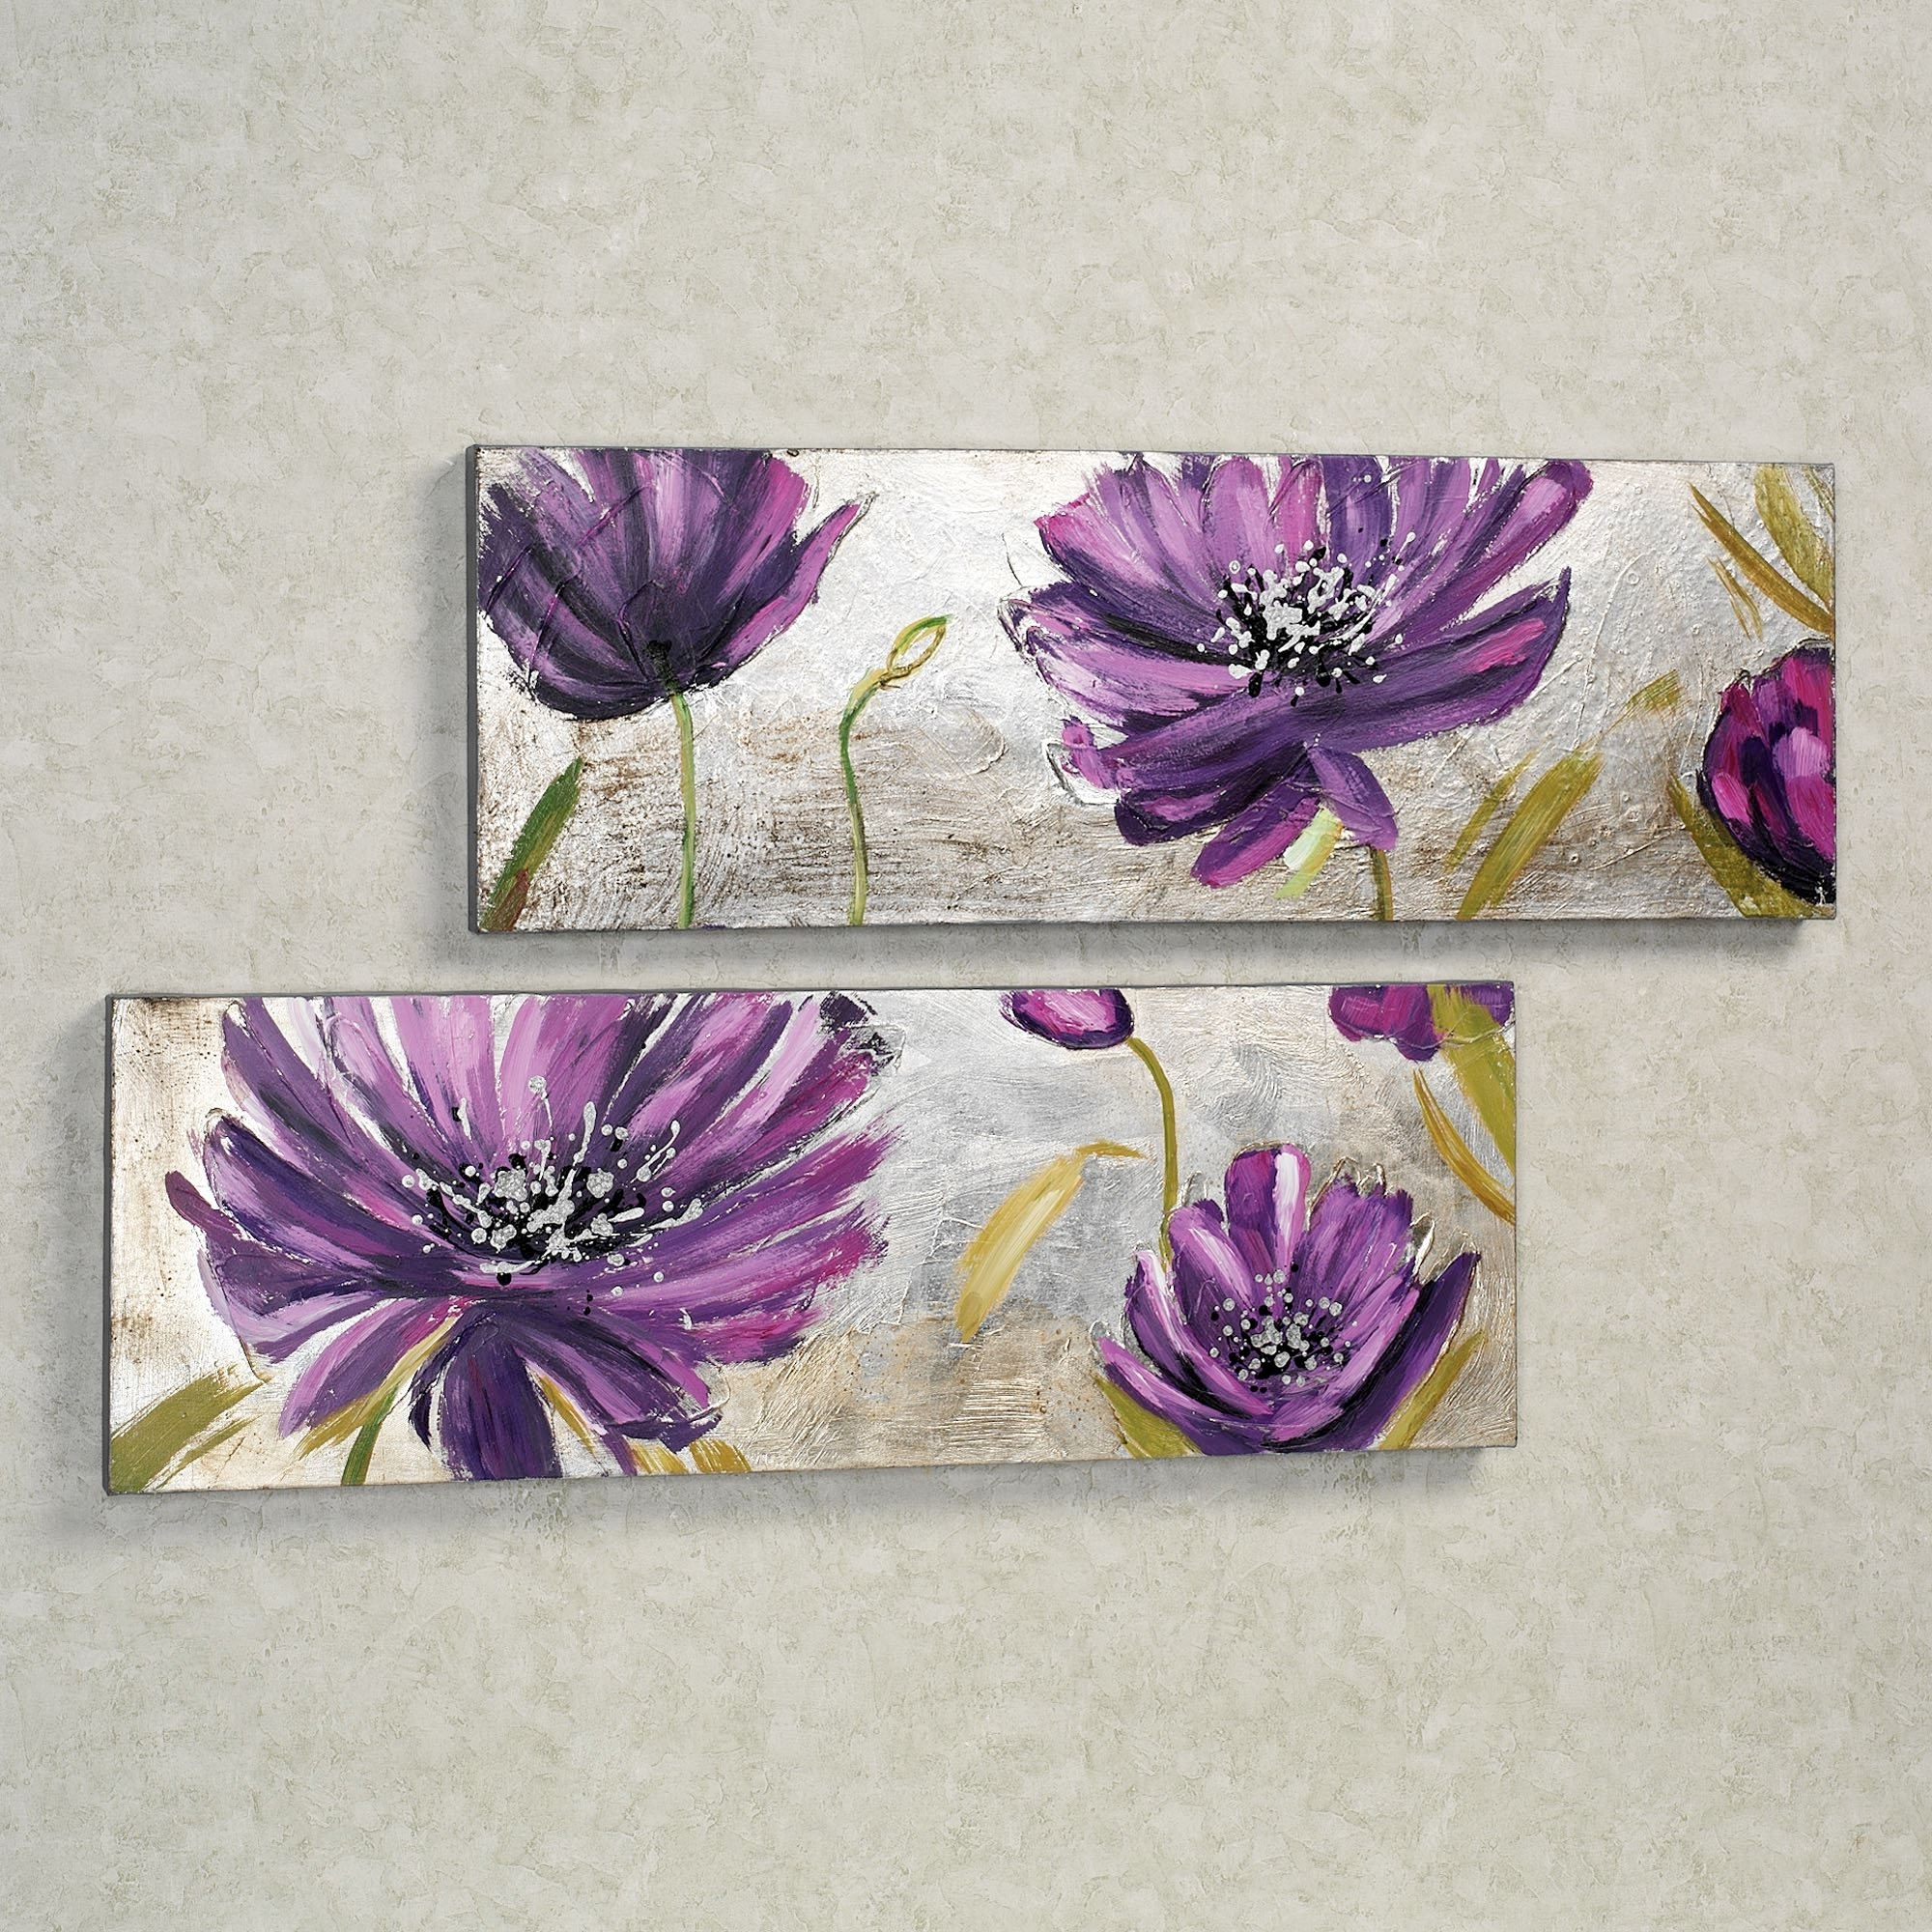 Best And Newest Purple Canvas Wall Art In Purple Allure Floral Canvas Wall Art Set (View 6 of 15)